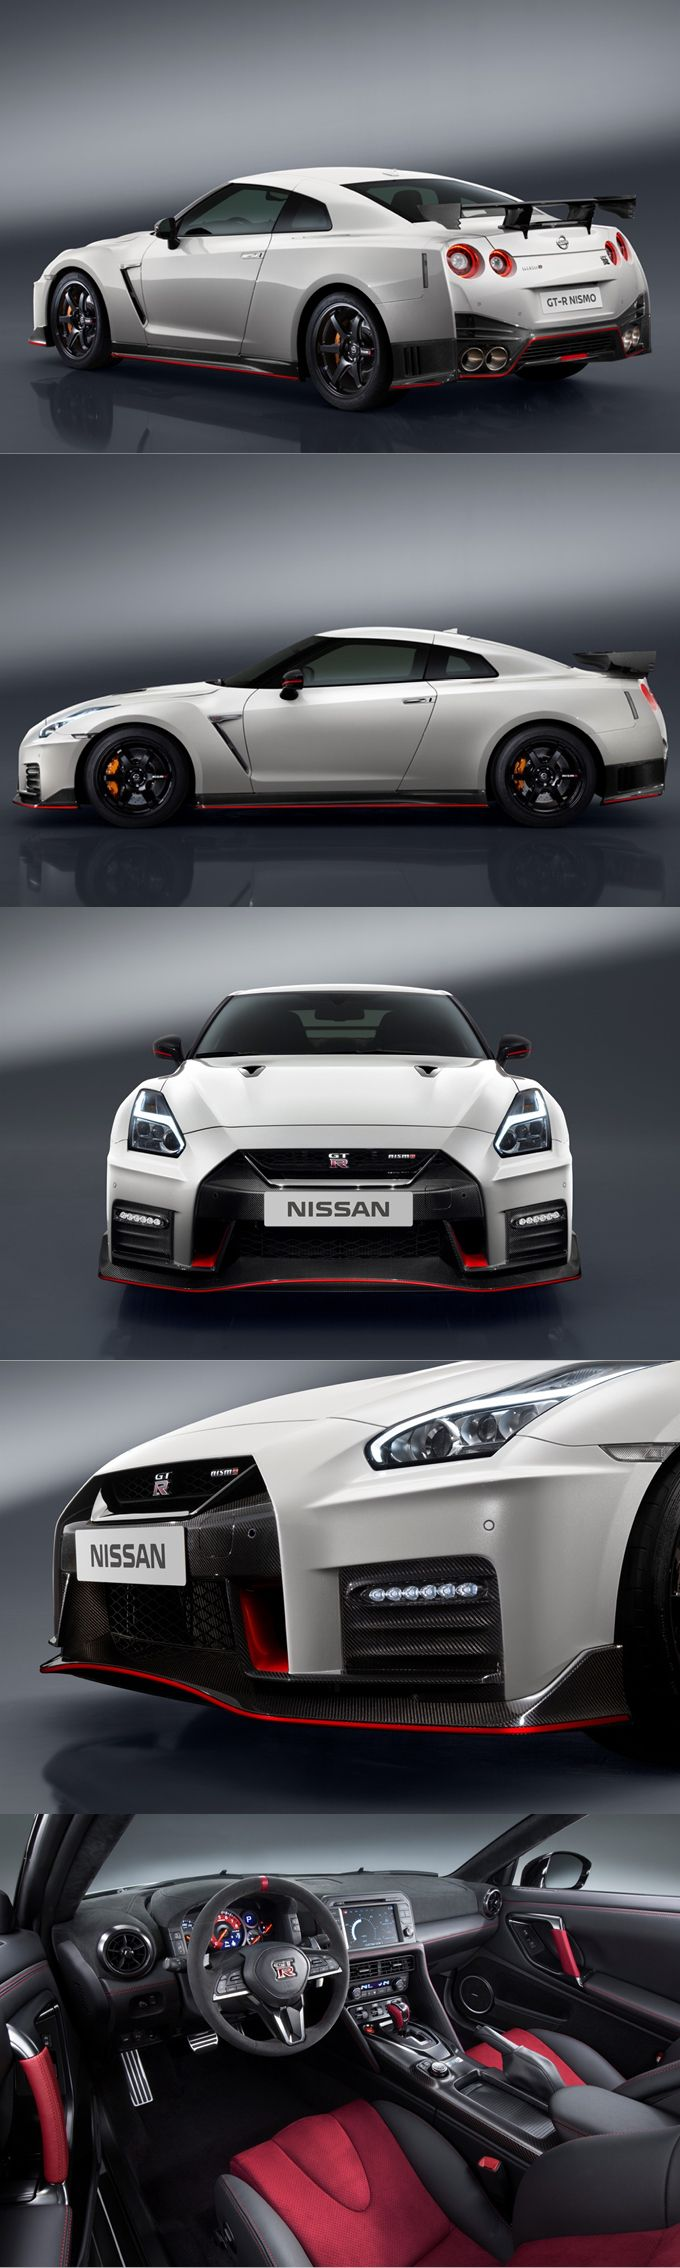 2016 Nissan GT-R Nismo / 600hp 3.8l V6 / Japan / red white / 17-385